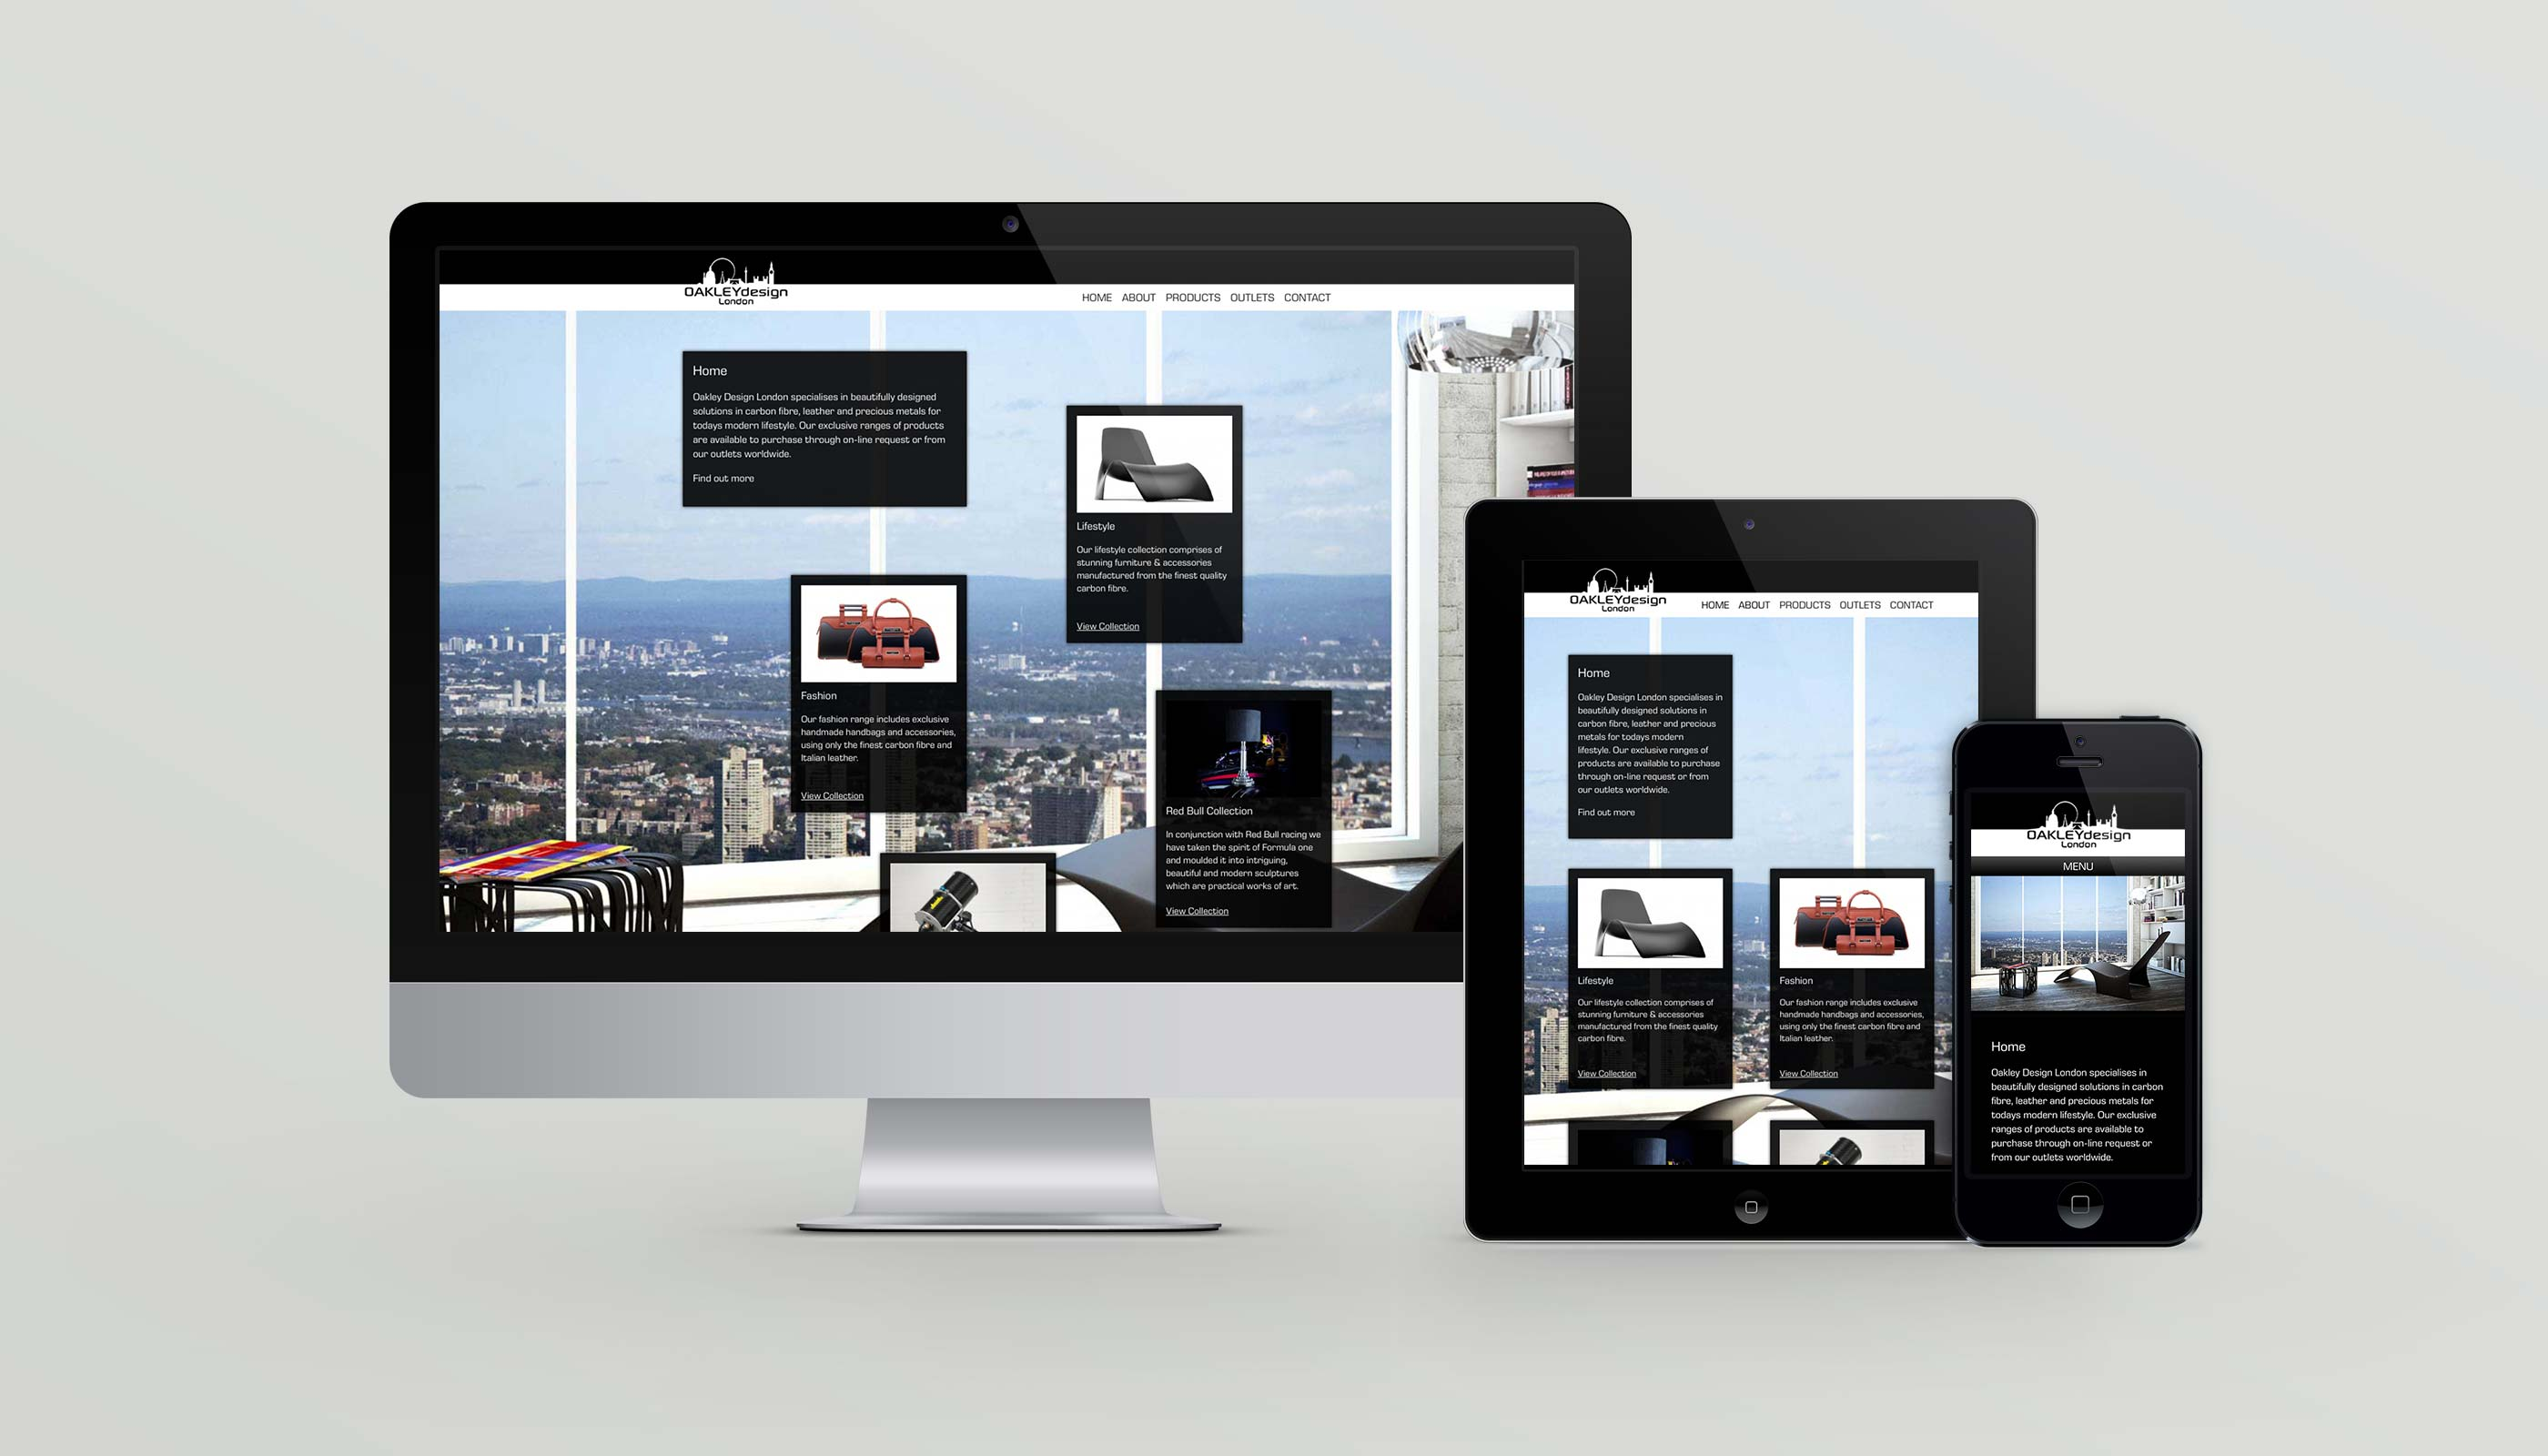 Responsive website design for luxury goods retailer Oakley Design London.